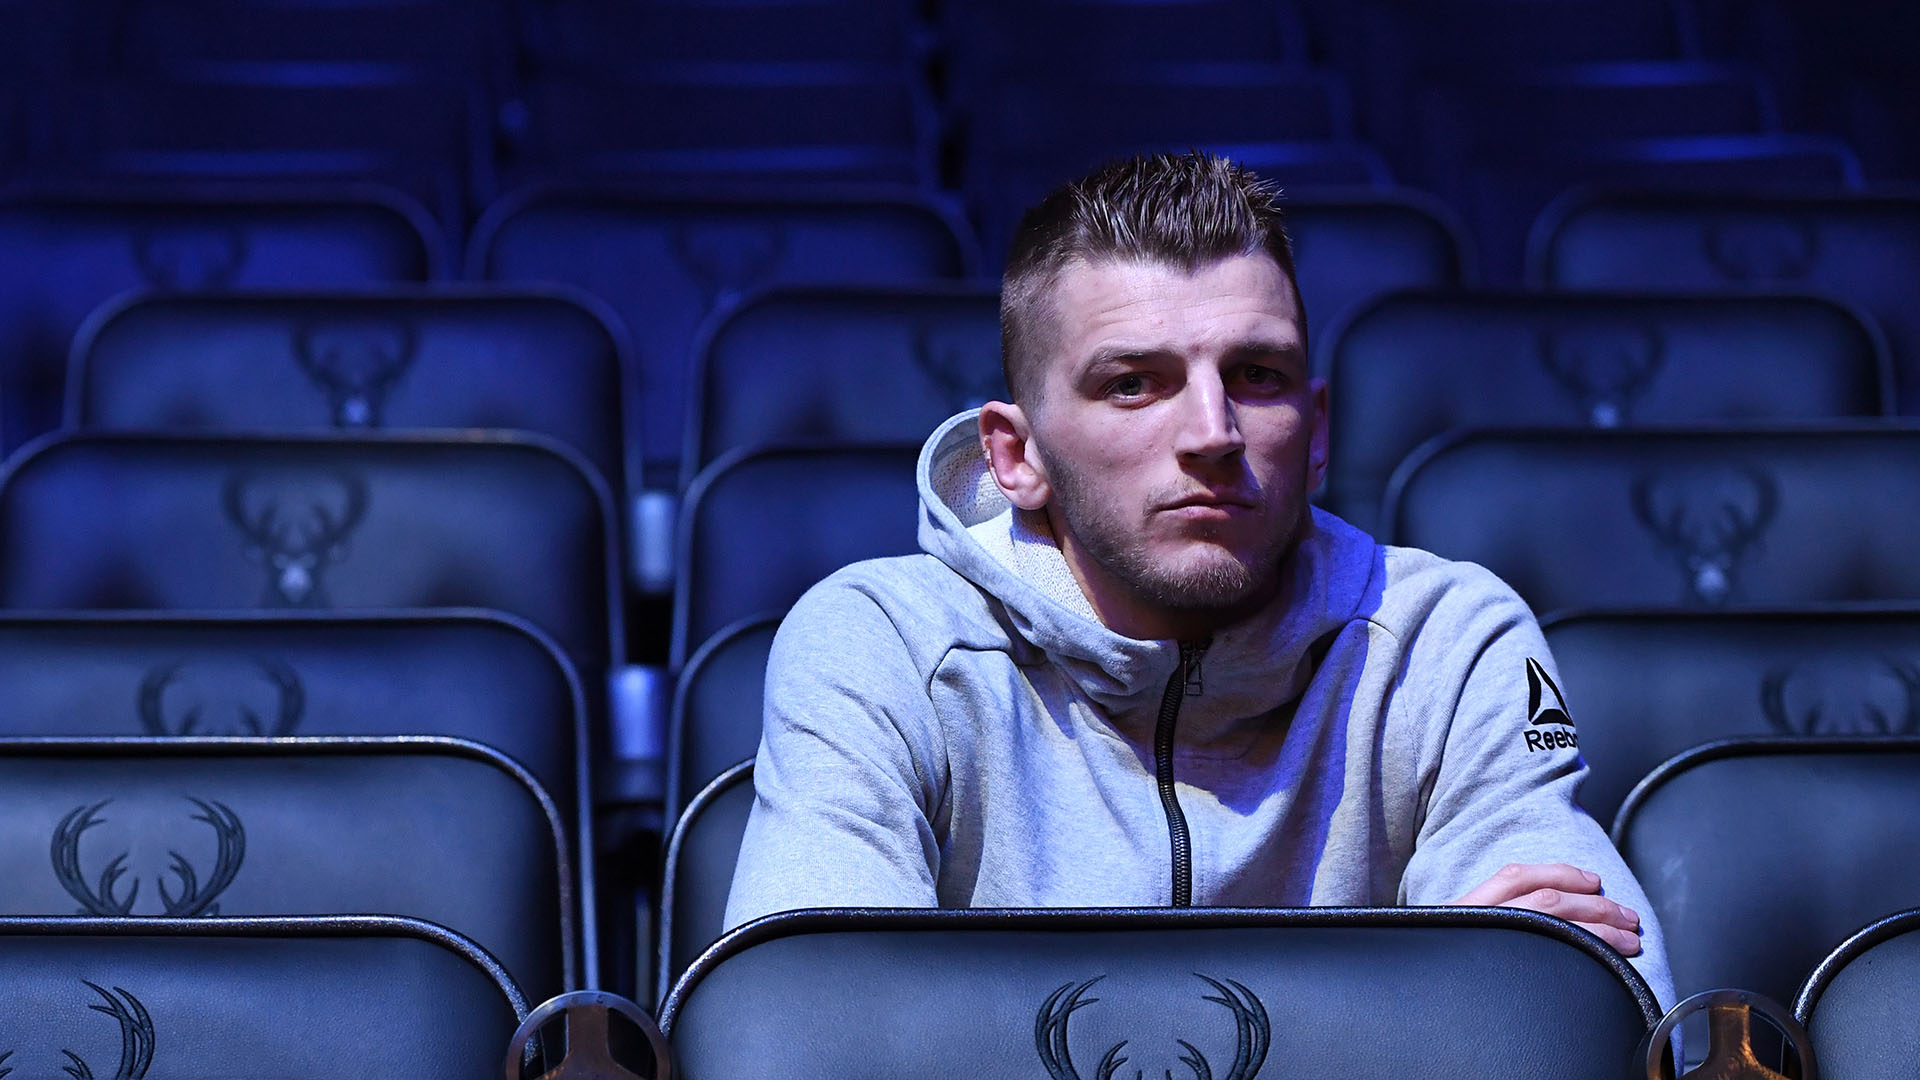 Dan Hooker waits backstage during the UFC Fight Night weigh-in at Fiserv Forum on December 14, 2018 in Milwaukee, Wisconsin. (Photo by Mike Roach/Zuffa LLC)